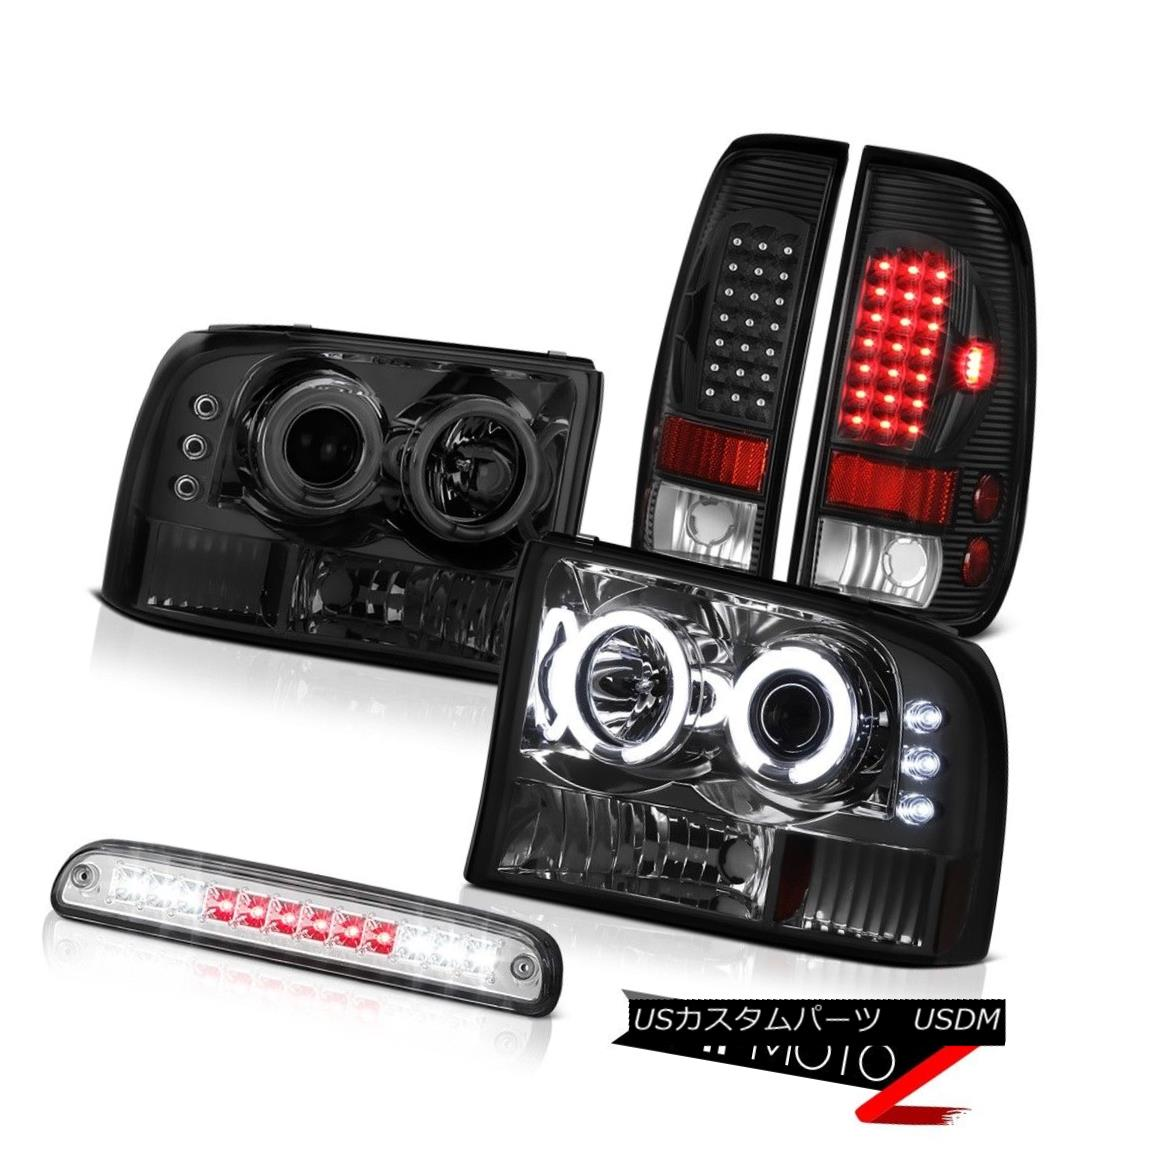 テールライト DRL CCFL Headlights Third Brake Cargo LED L.E.D Rear Tail Light 1999-2004 F350 DRL CCFLヘッドライト第3ブレーキカーゴLED L.E.Dリアテールライト1999-2004 F350